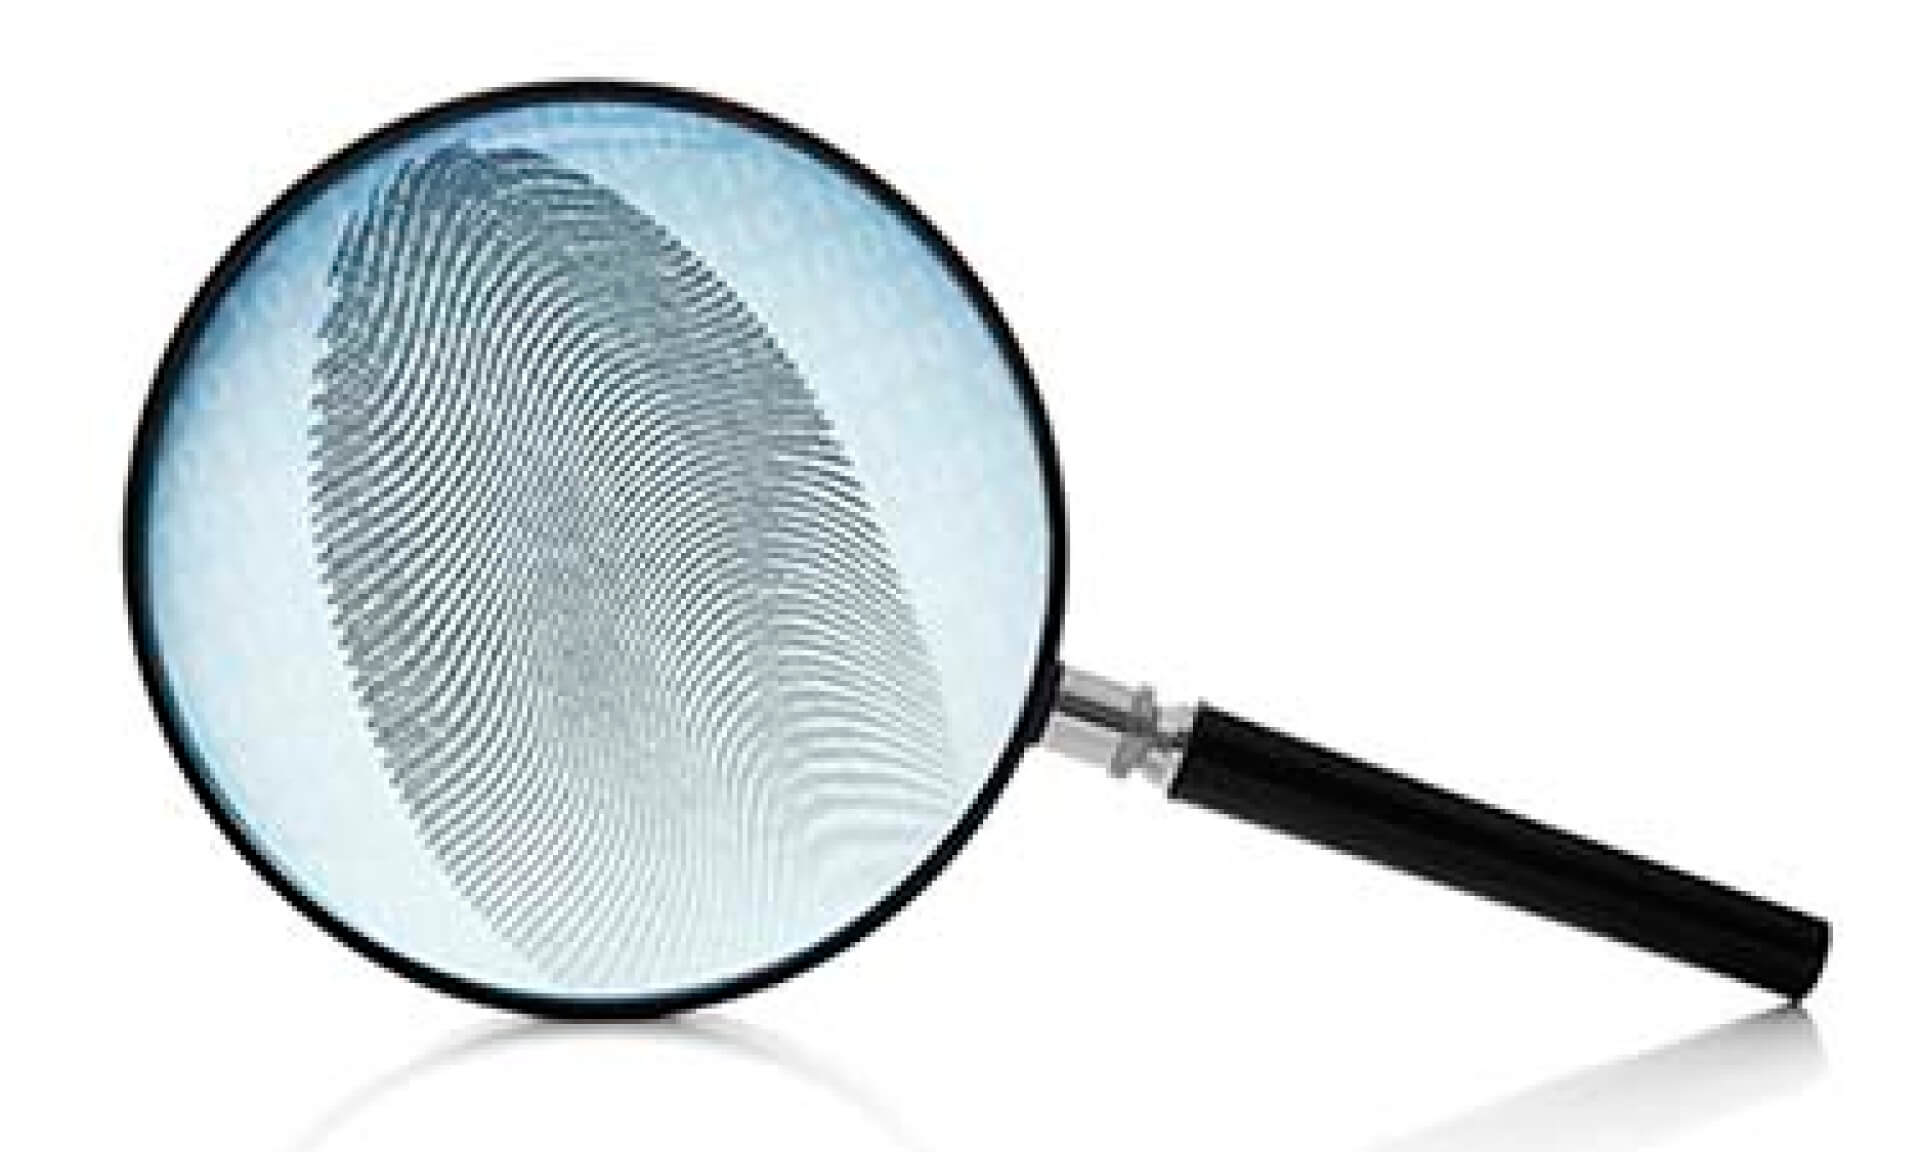 Types of Computer Forensics Technology